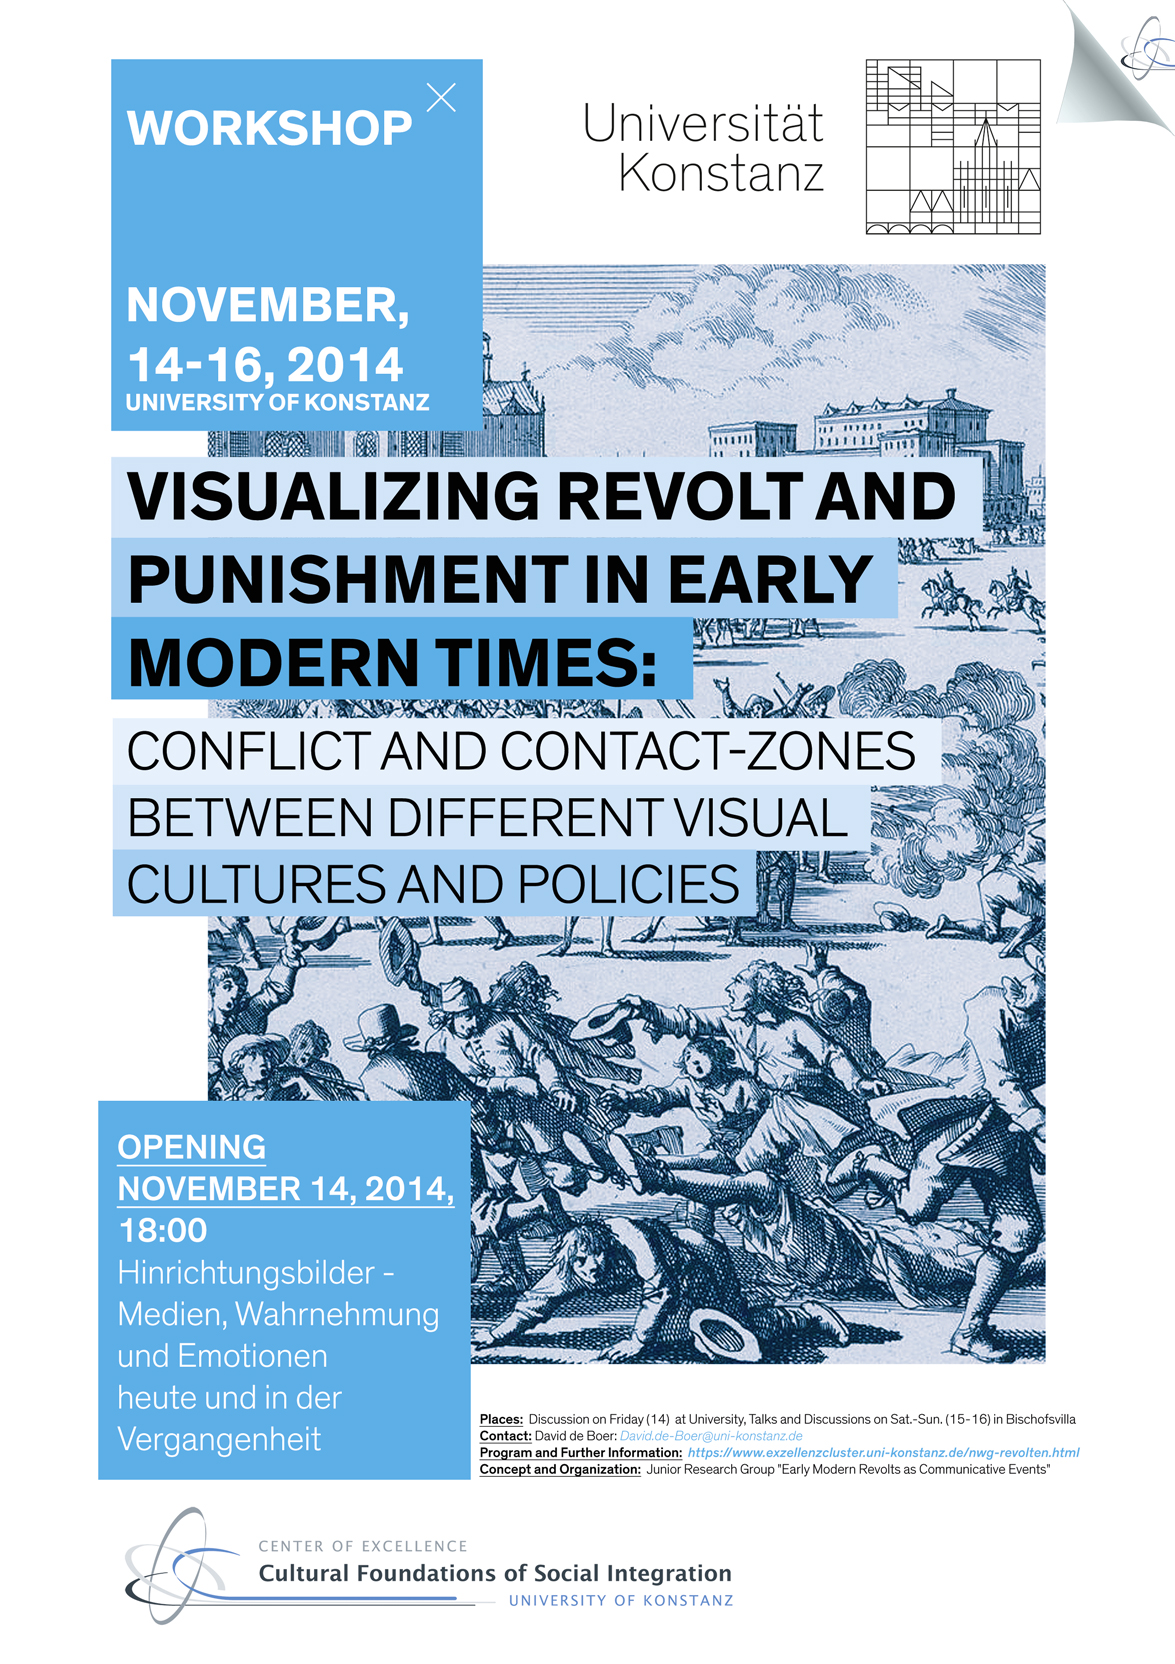 GRIESSE_V2_Visualizing and Punishment in Early Modern Times_2014